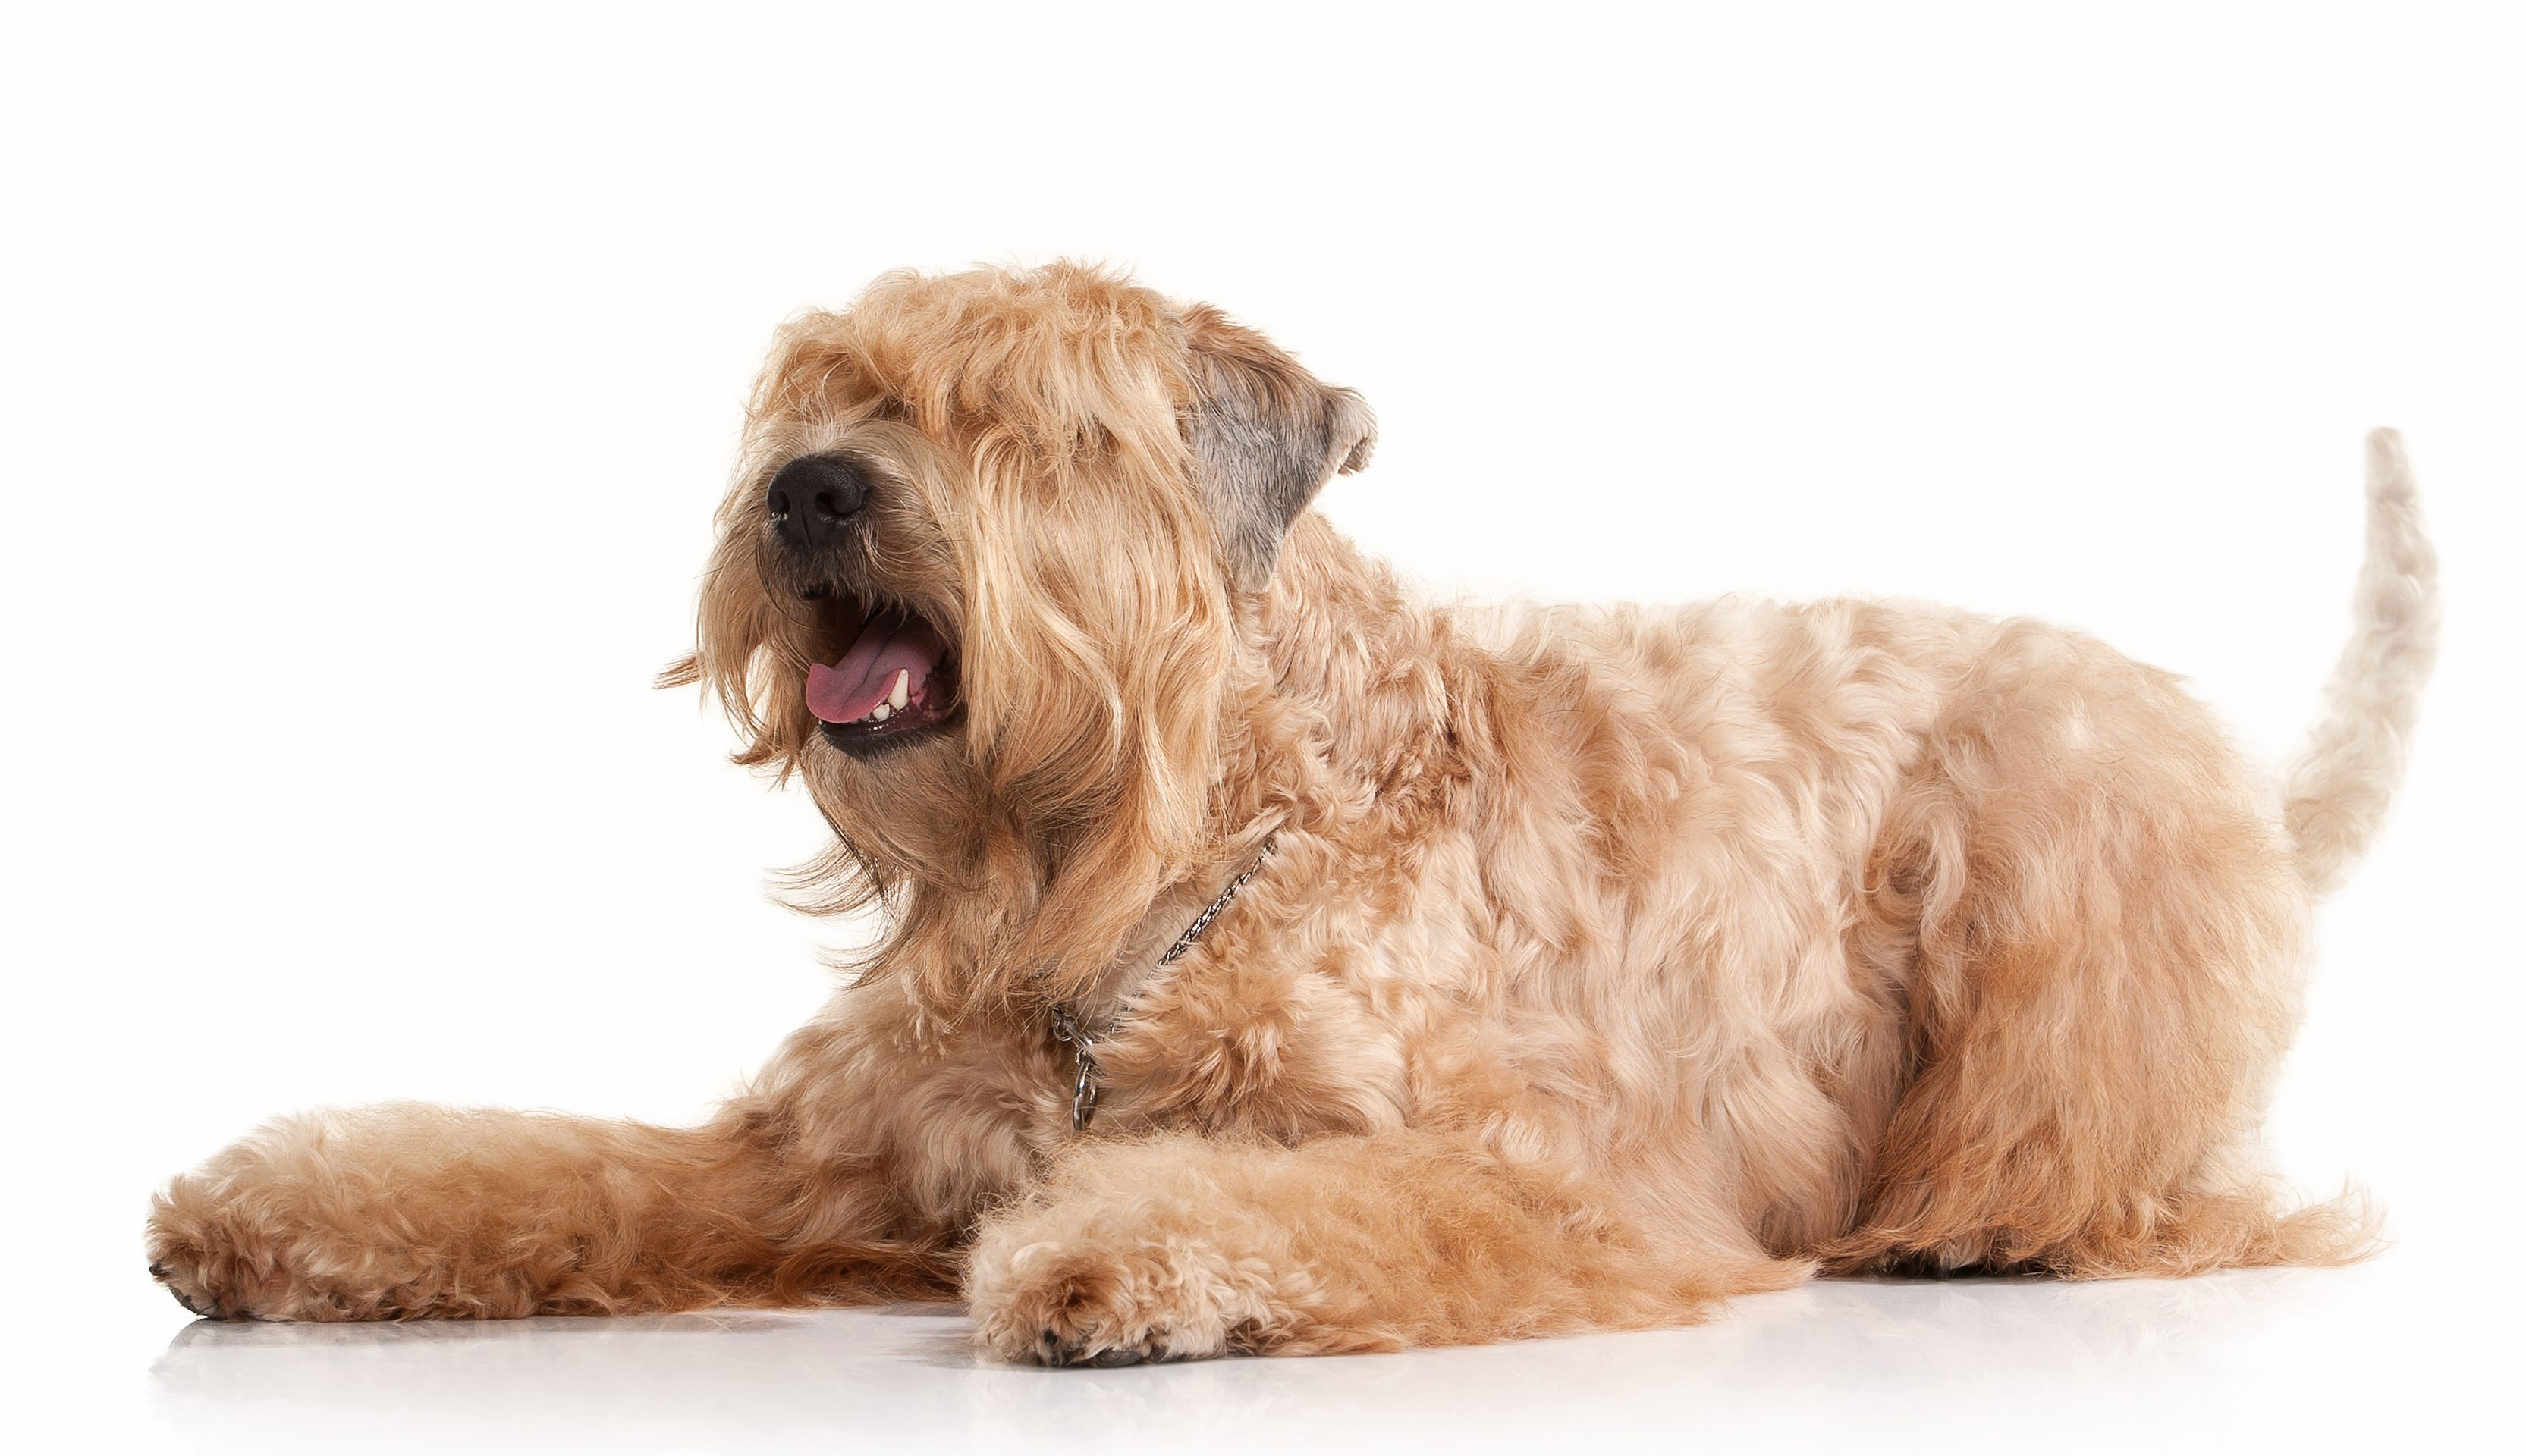 Soft Coated Wheaten Terrier lying down in front of white background